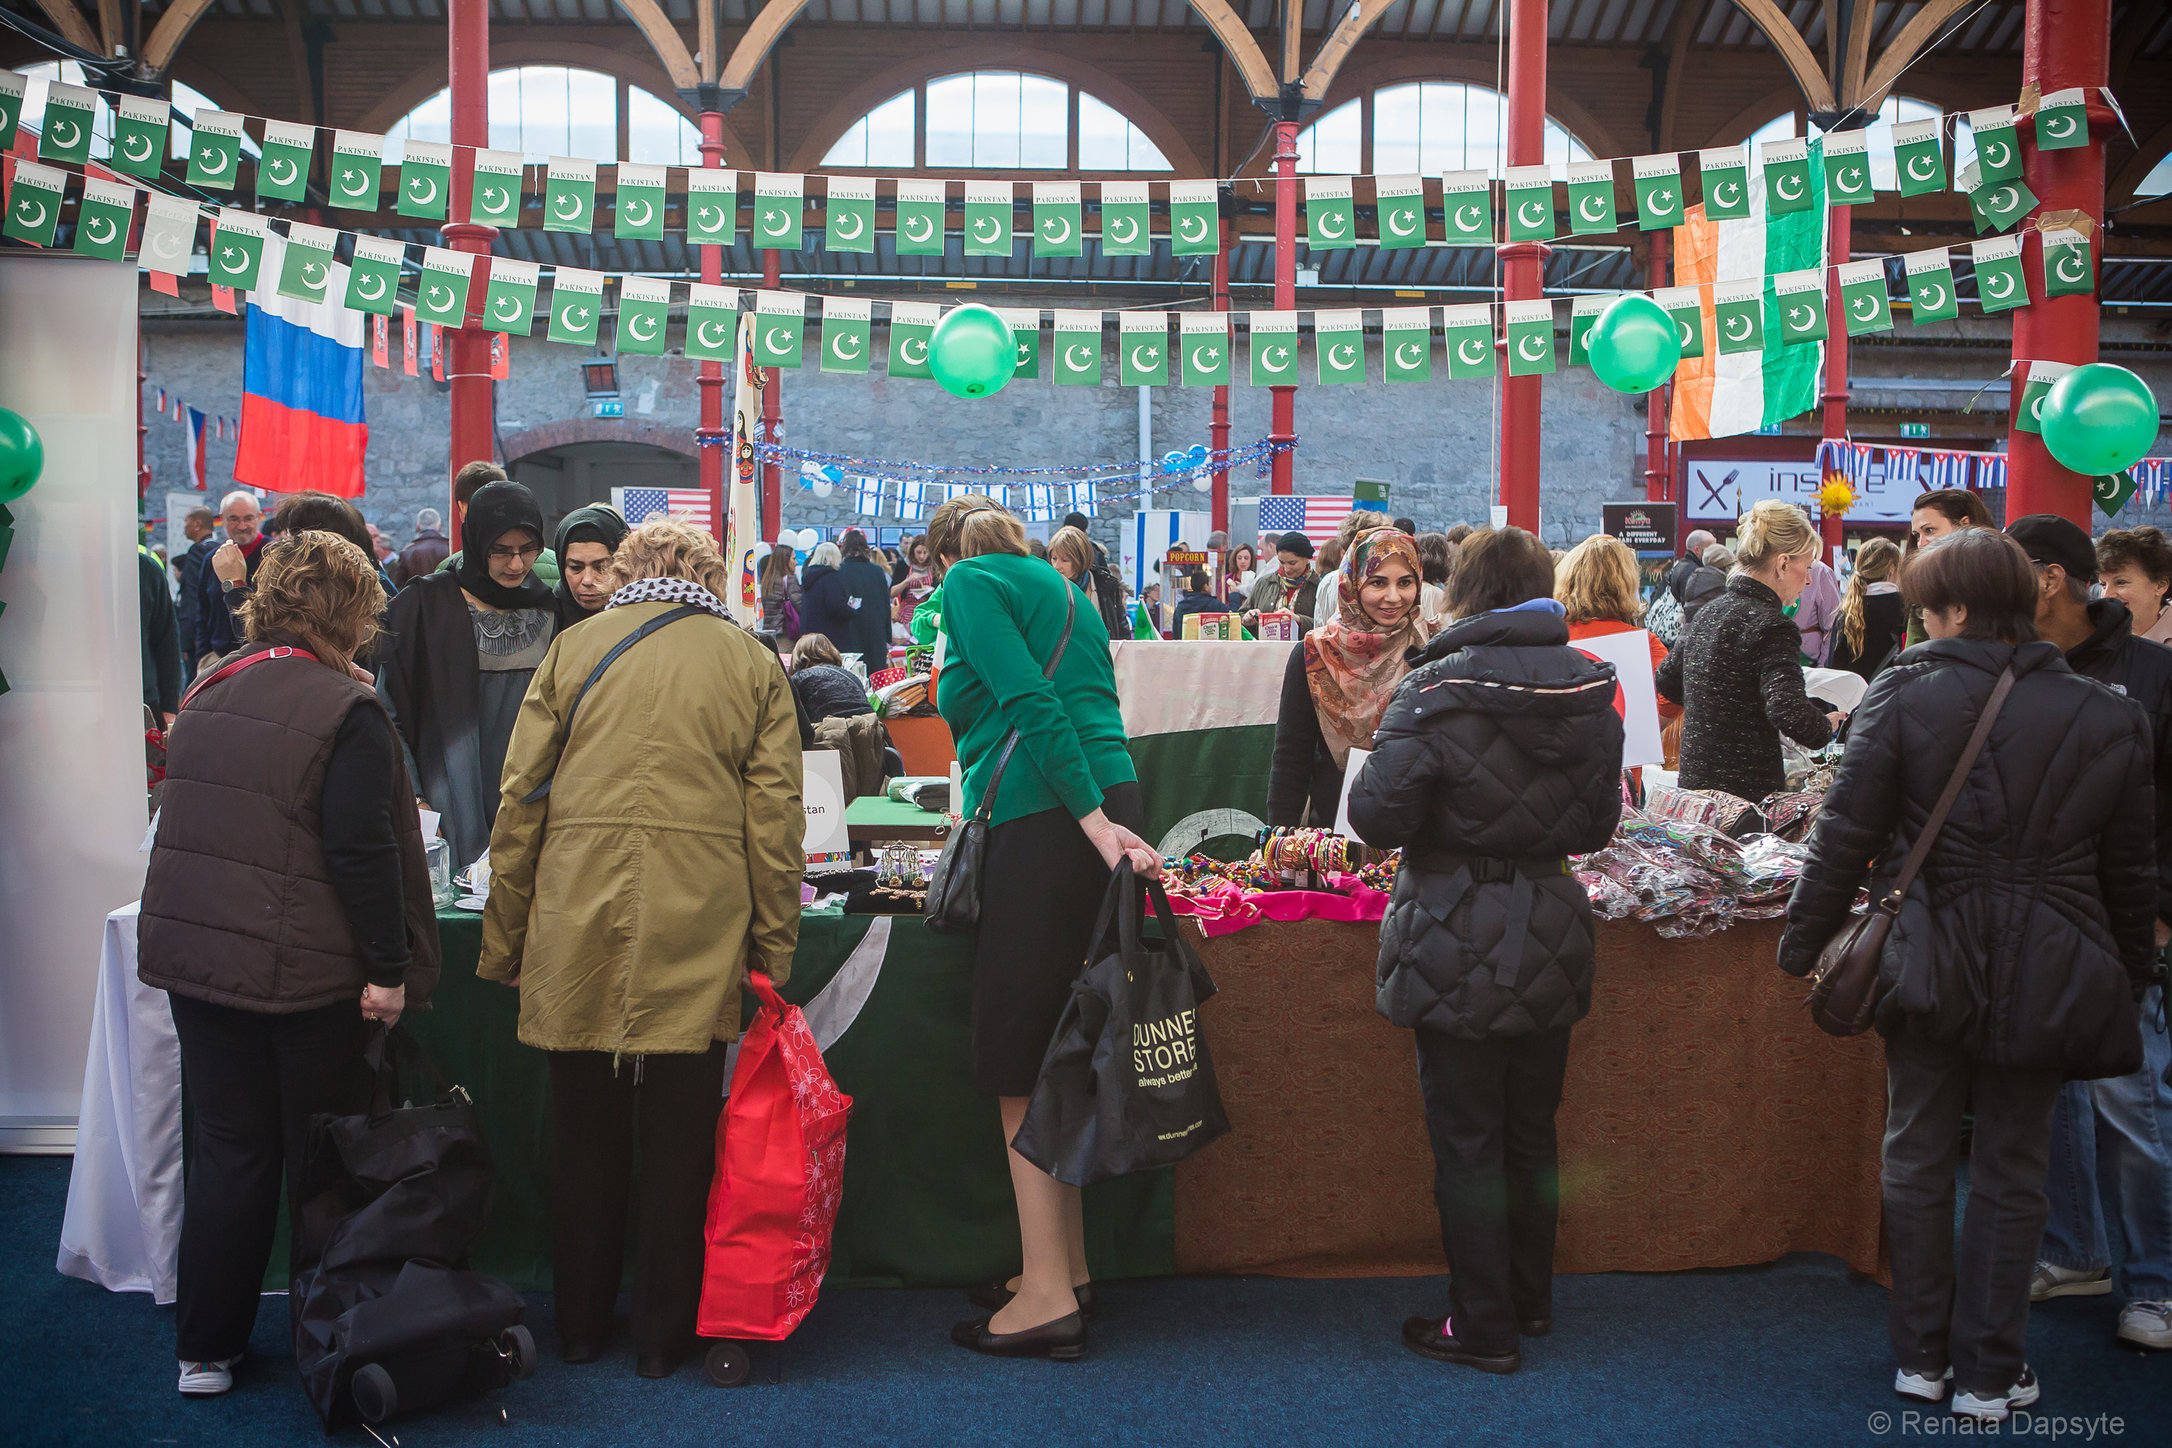 051_International Charity Bazaar Dublin 2013.JPG